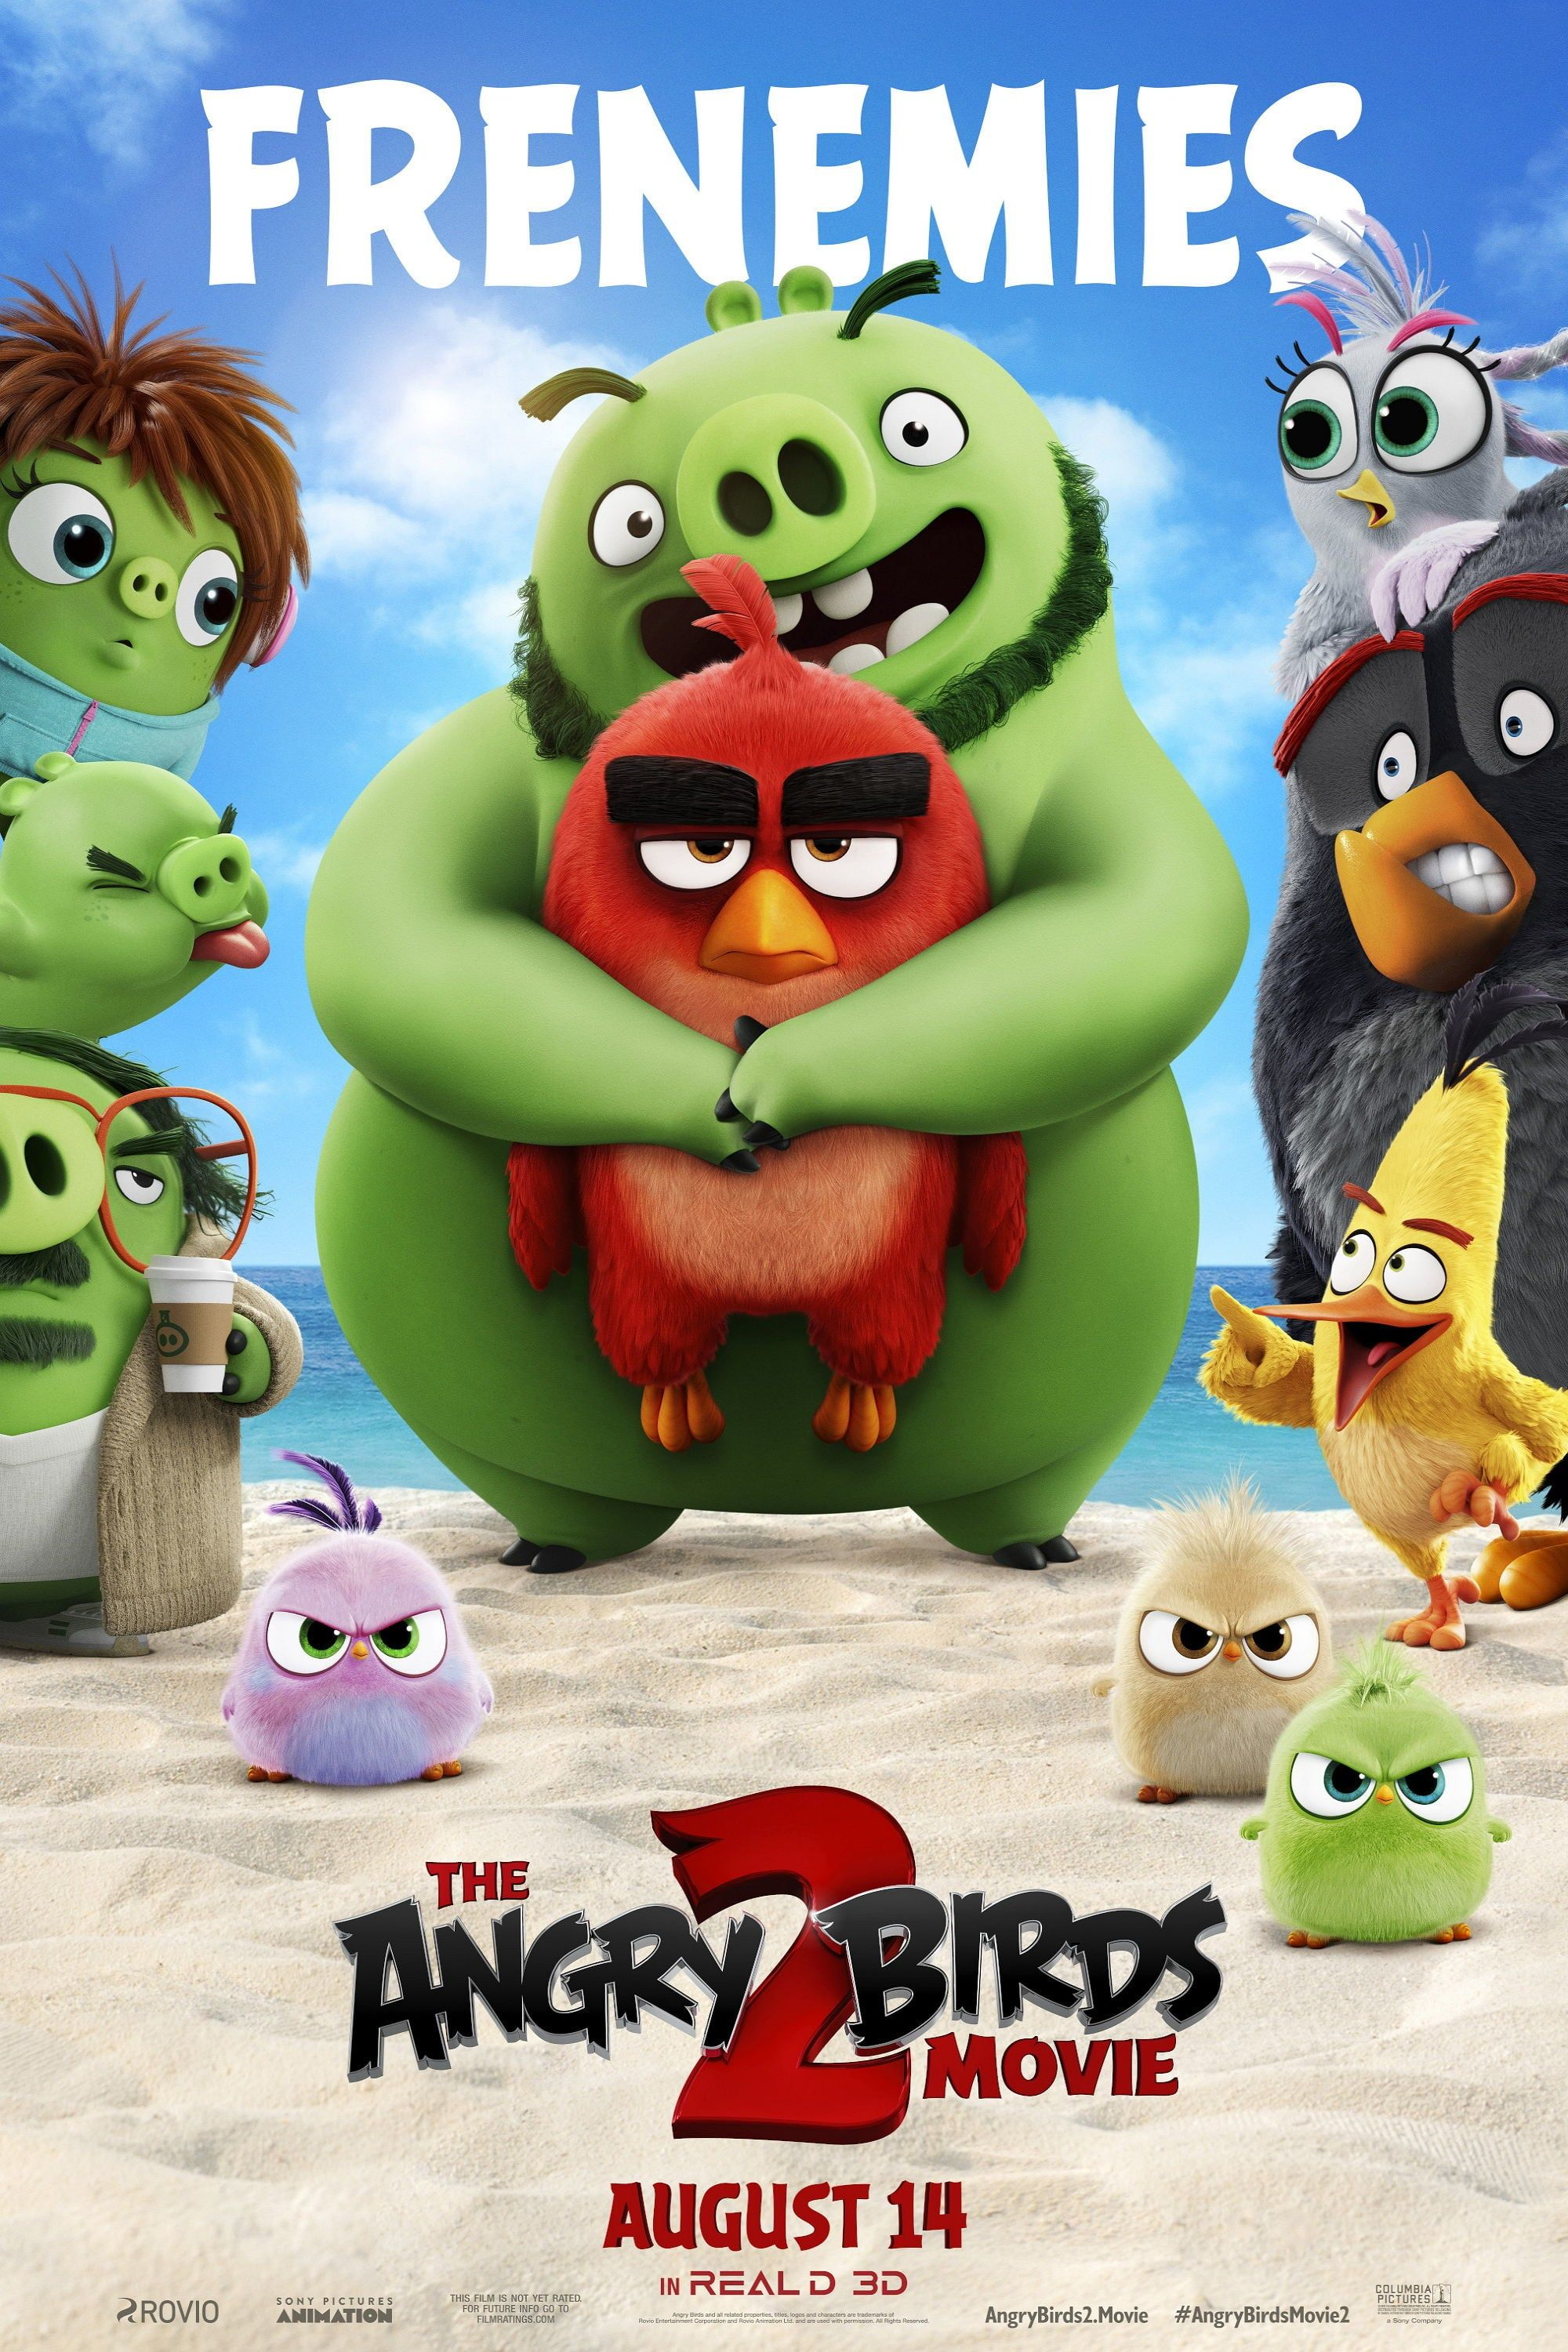 Hd 1080 The Angry Birds Movie 2 8651 Film Complet Dublat In Romana The A Angry Birds Movie Angry Birds 2 Movie Angry Birds